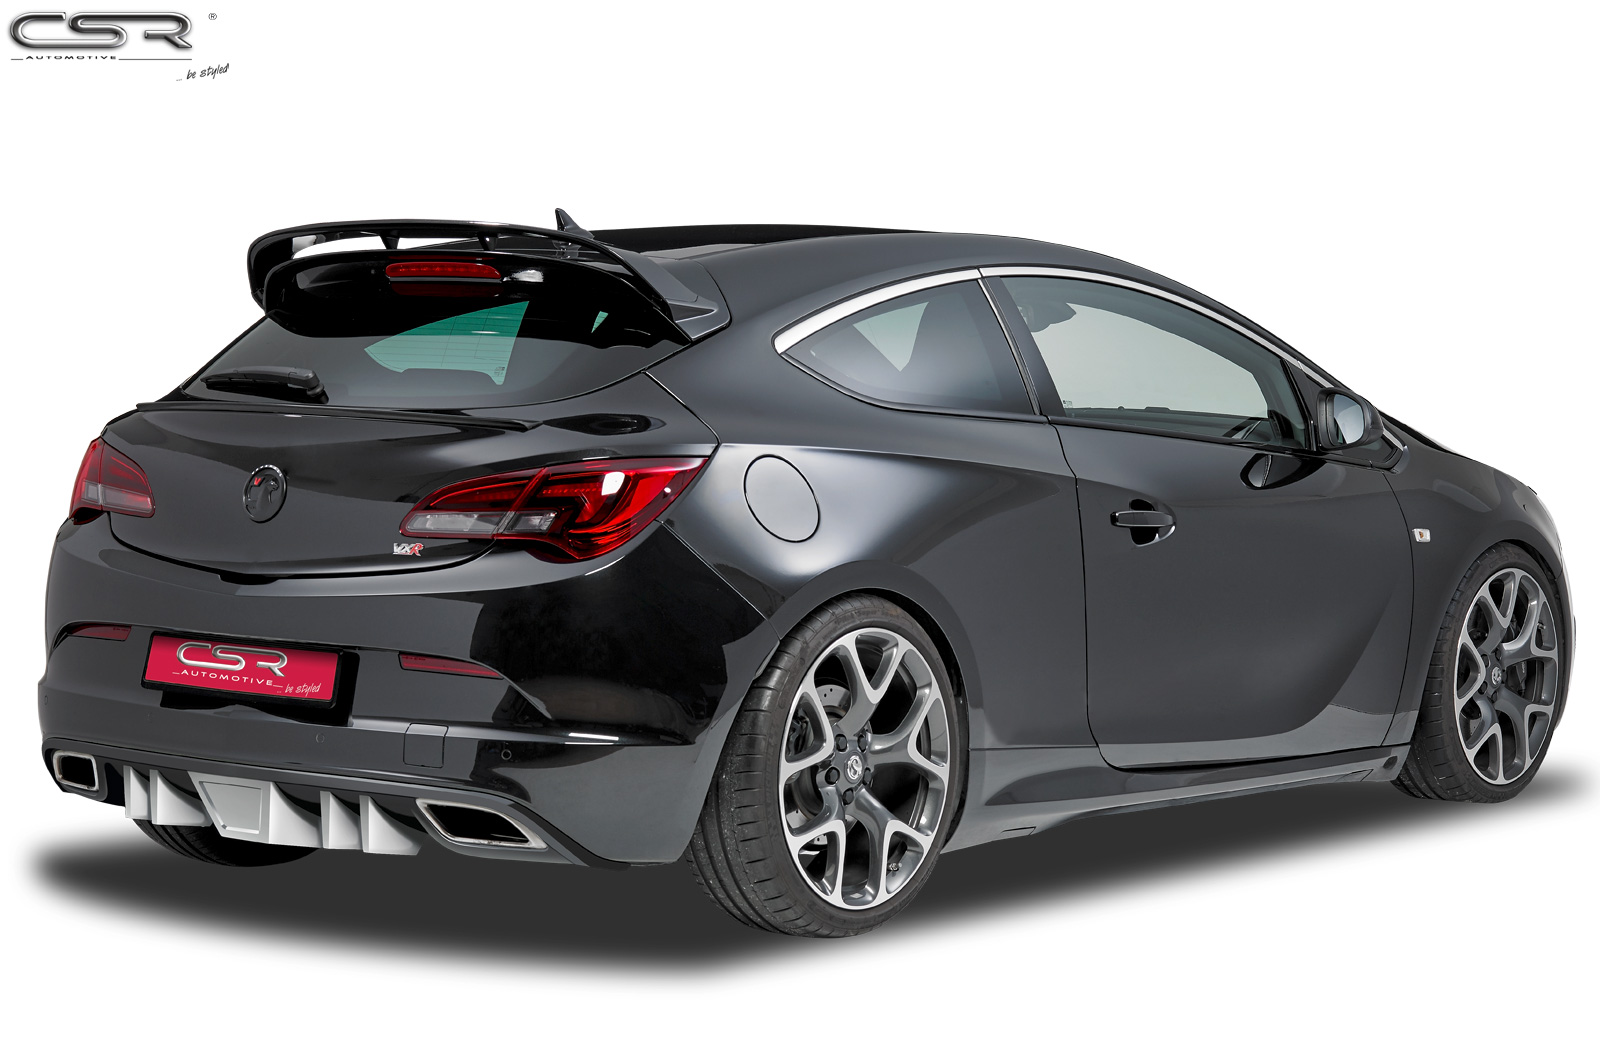 opel opel astra j gtc opc zadn spoiler ha172 csr. Black Bedroom Furniture Sets. Home Design Ideas